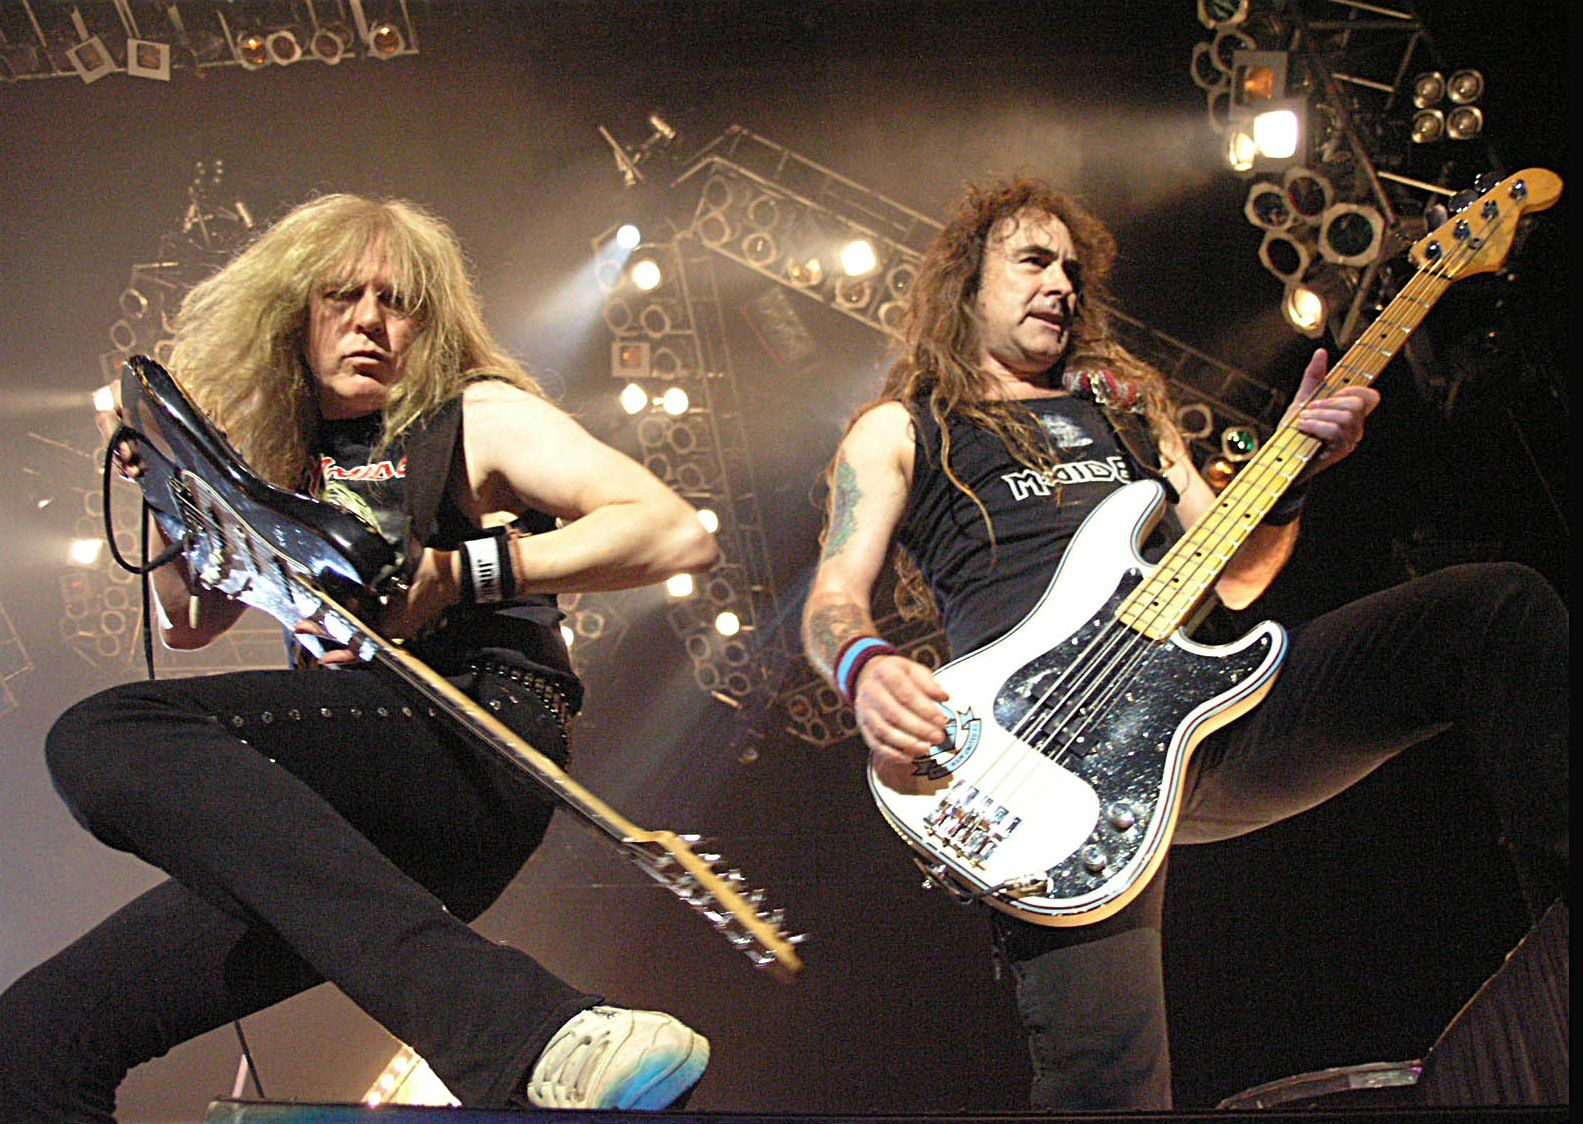 Steve Harris and Janick Gers (Iron Maiden)